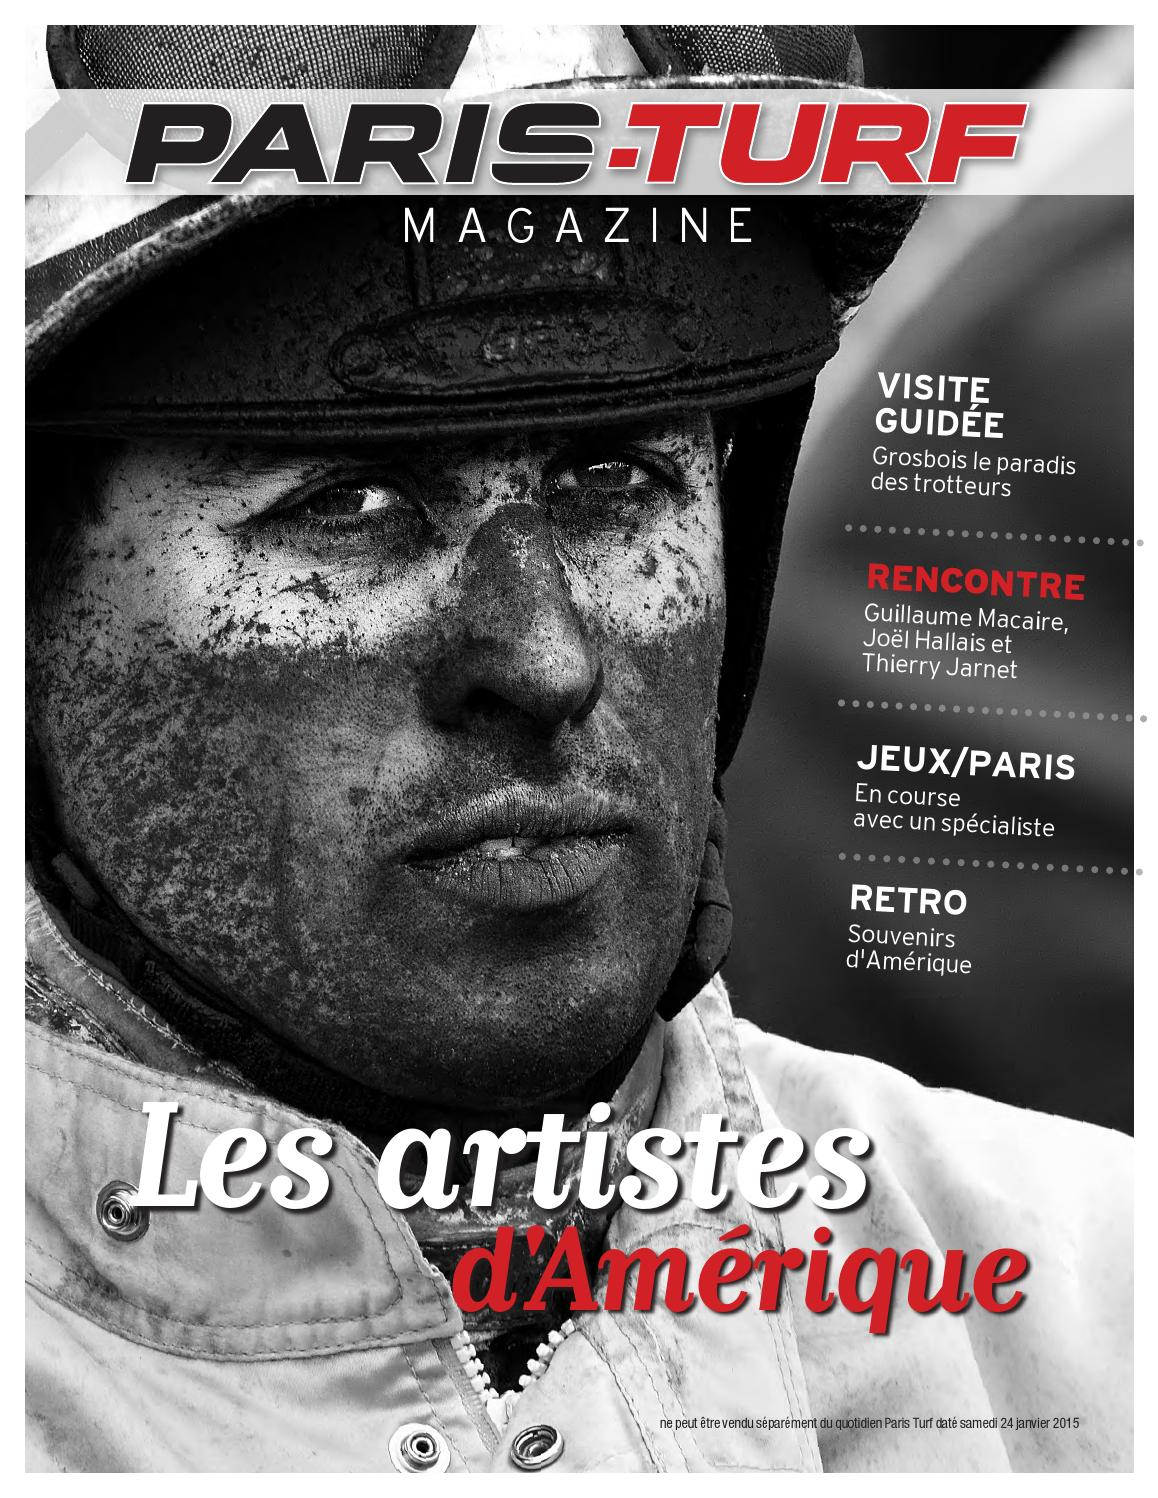 Agence rencontre 91